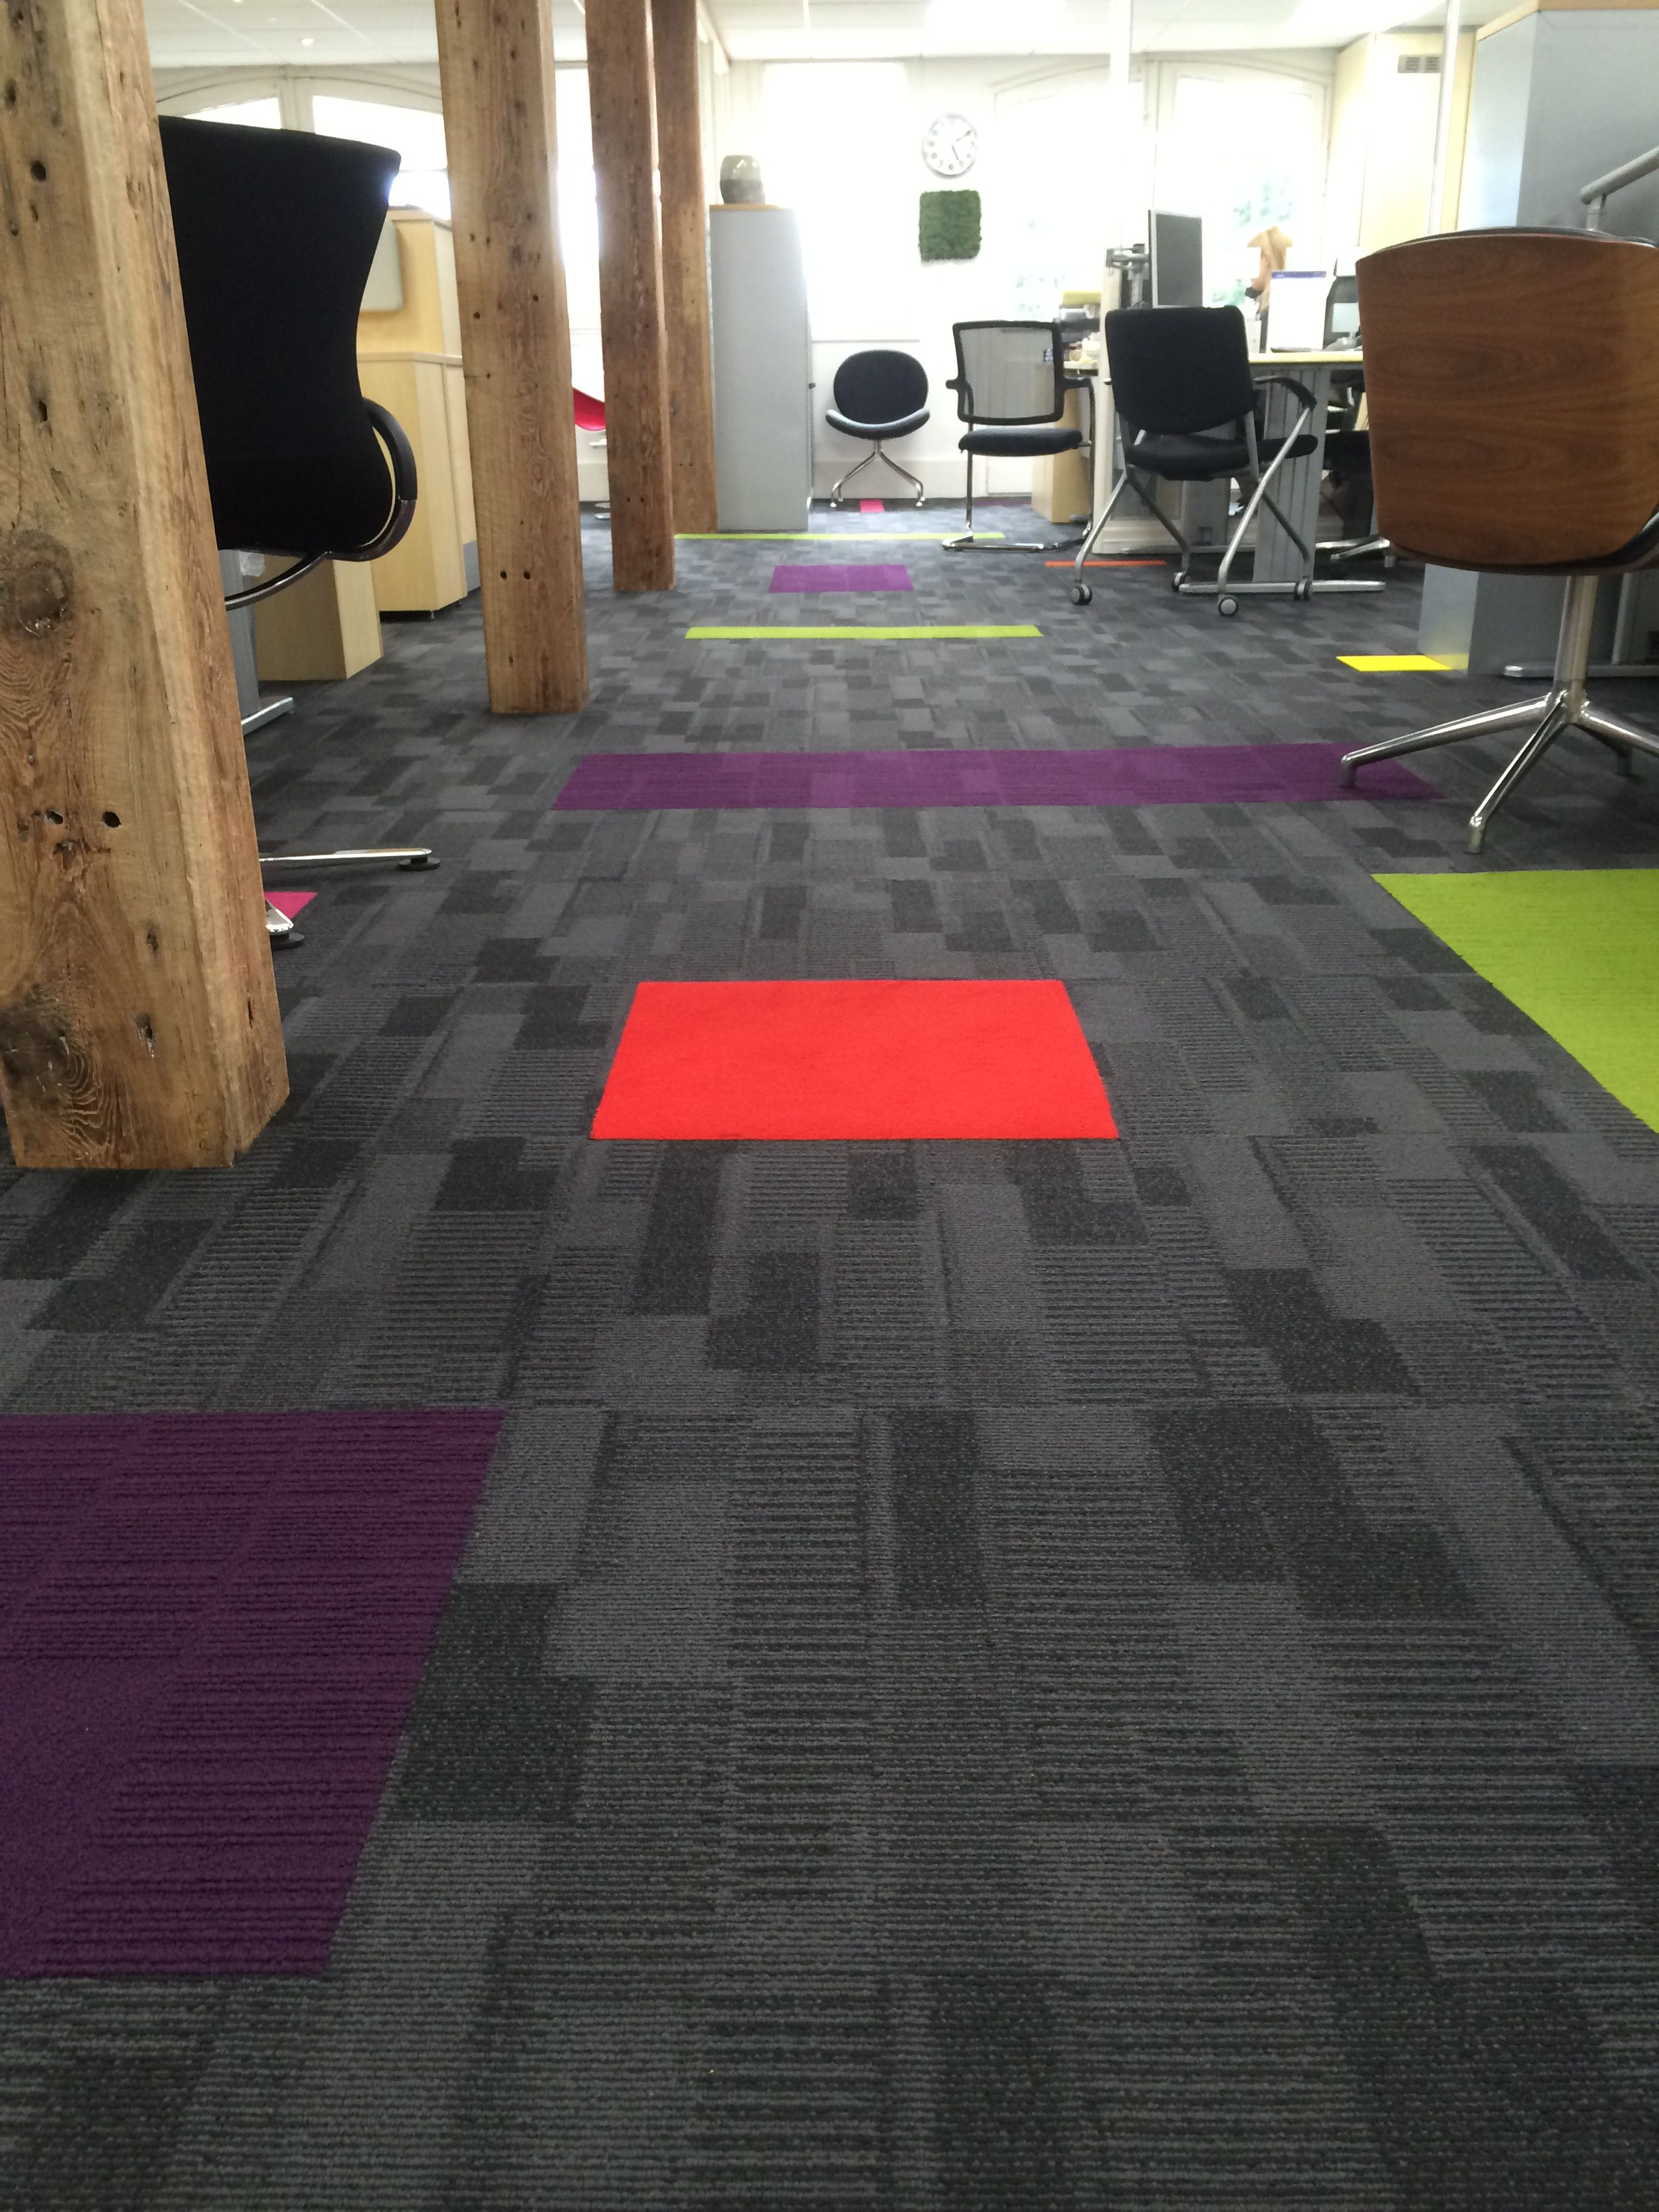 Linear Flooring Design Using Interface Tiles Installed By Creed